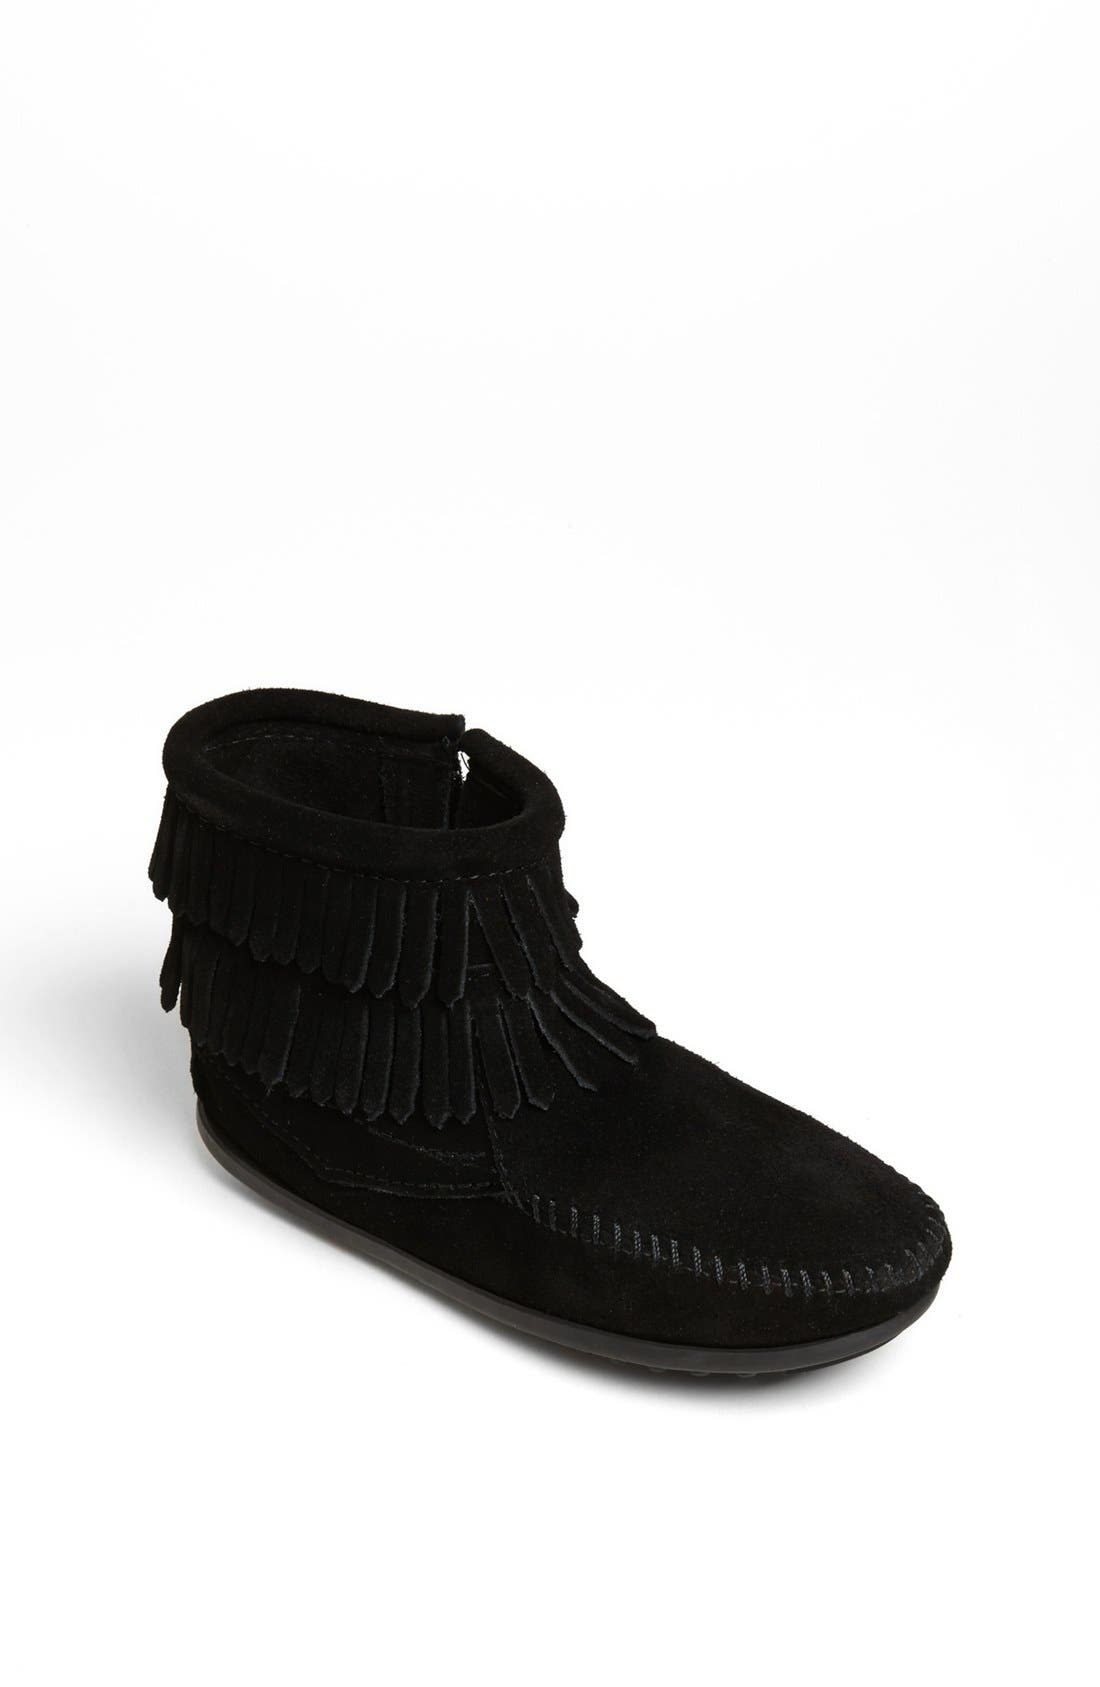 Minnetonka 'Double Fringe' Boot (Baby, Walker, Toddler, Little Kid & Big Kid)